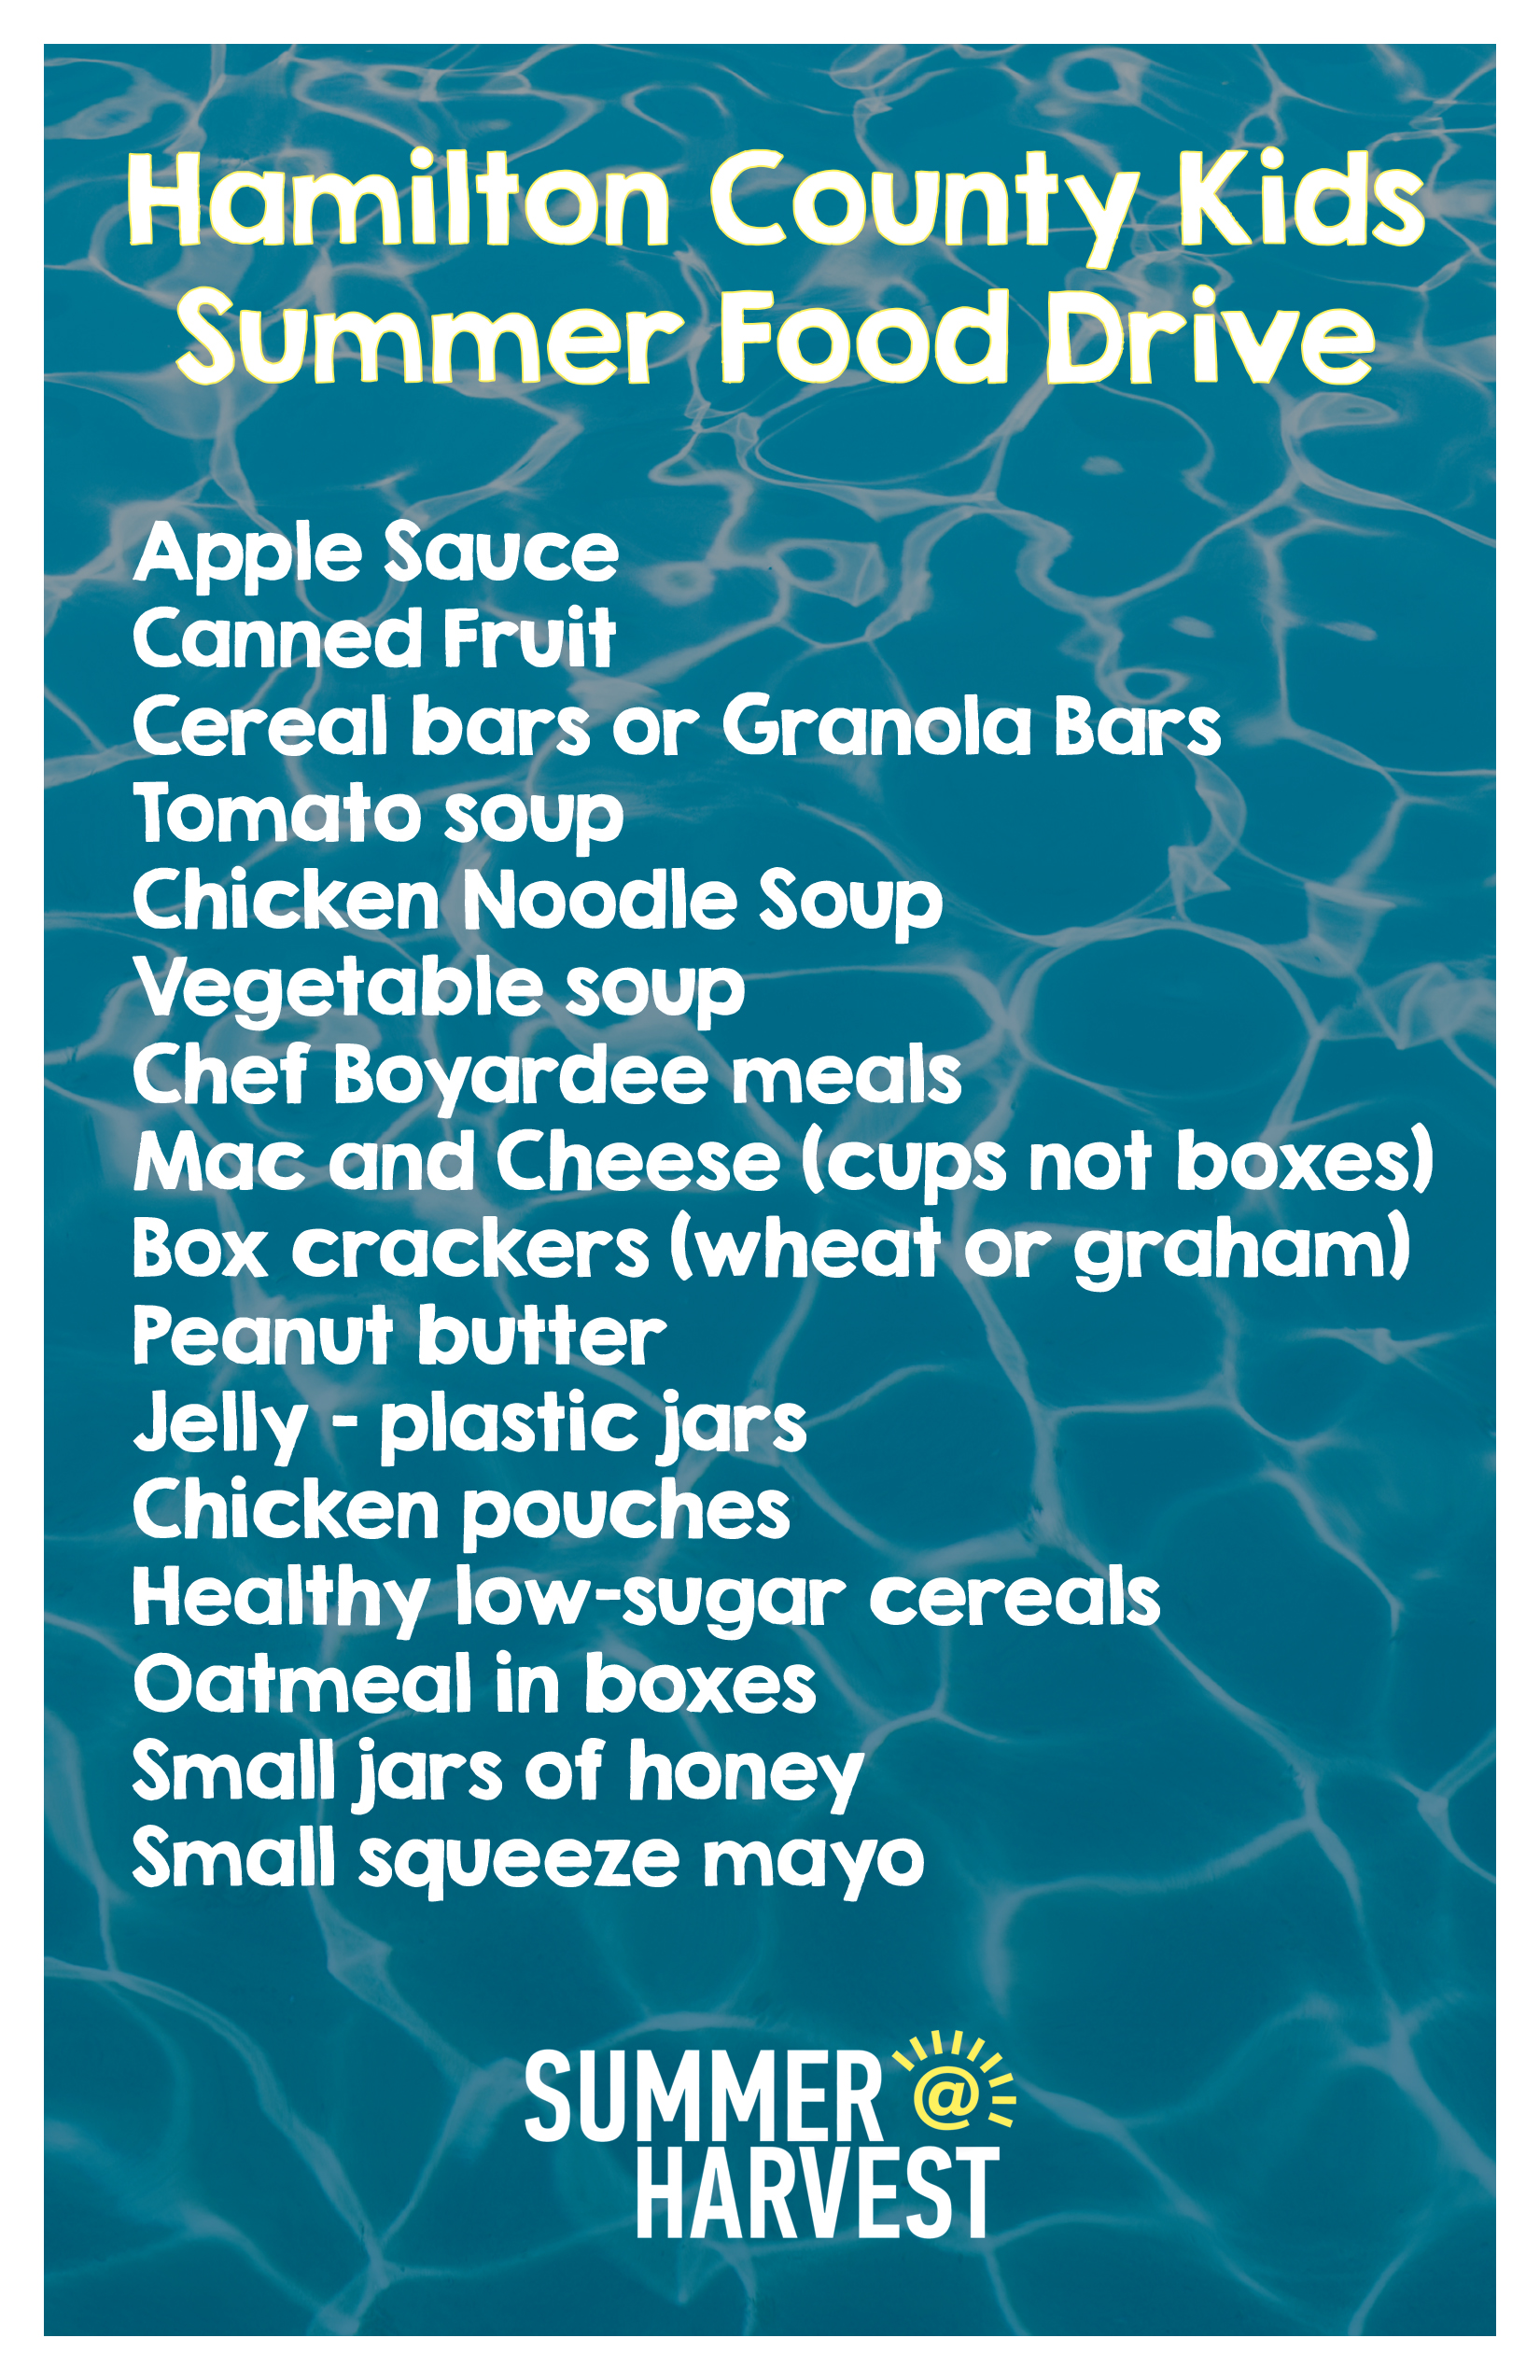 Food Drive Shopping List graphic.jpg